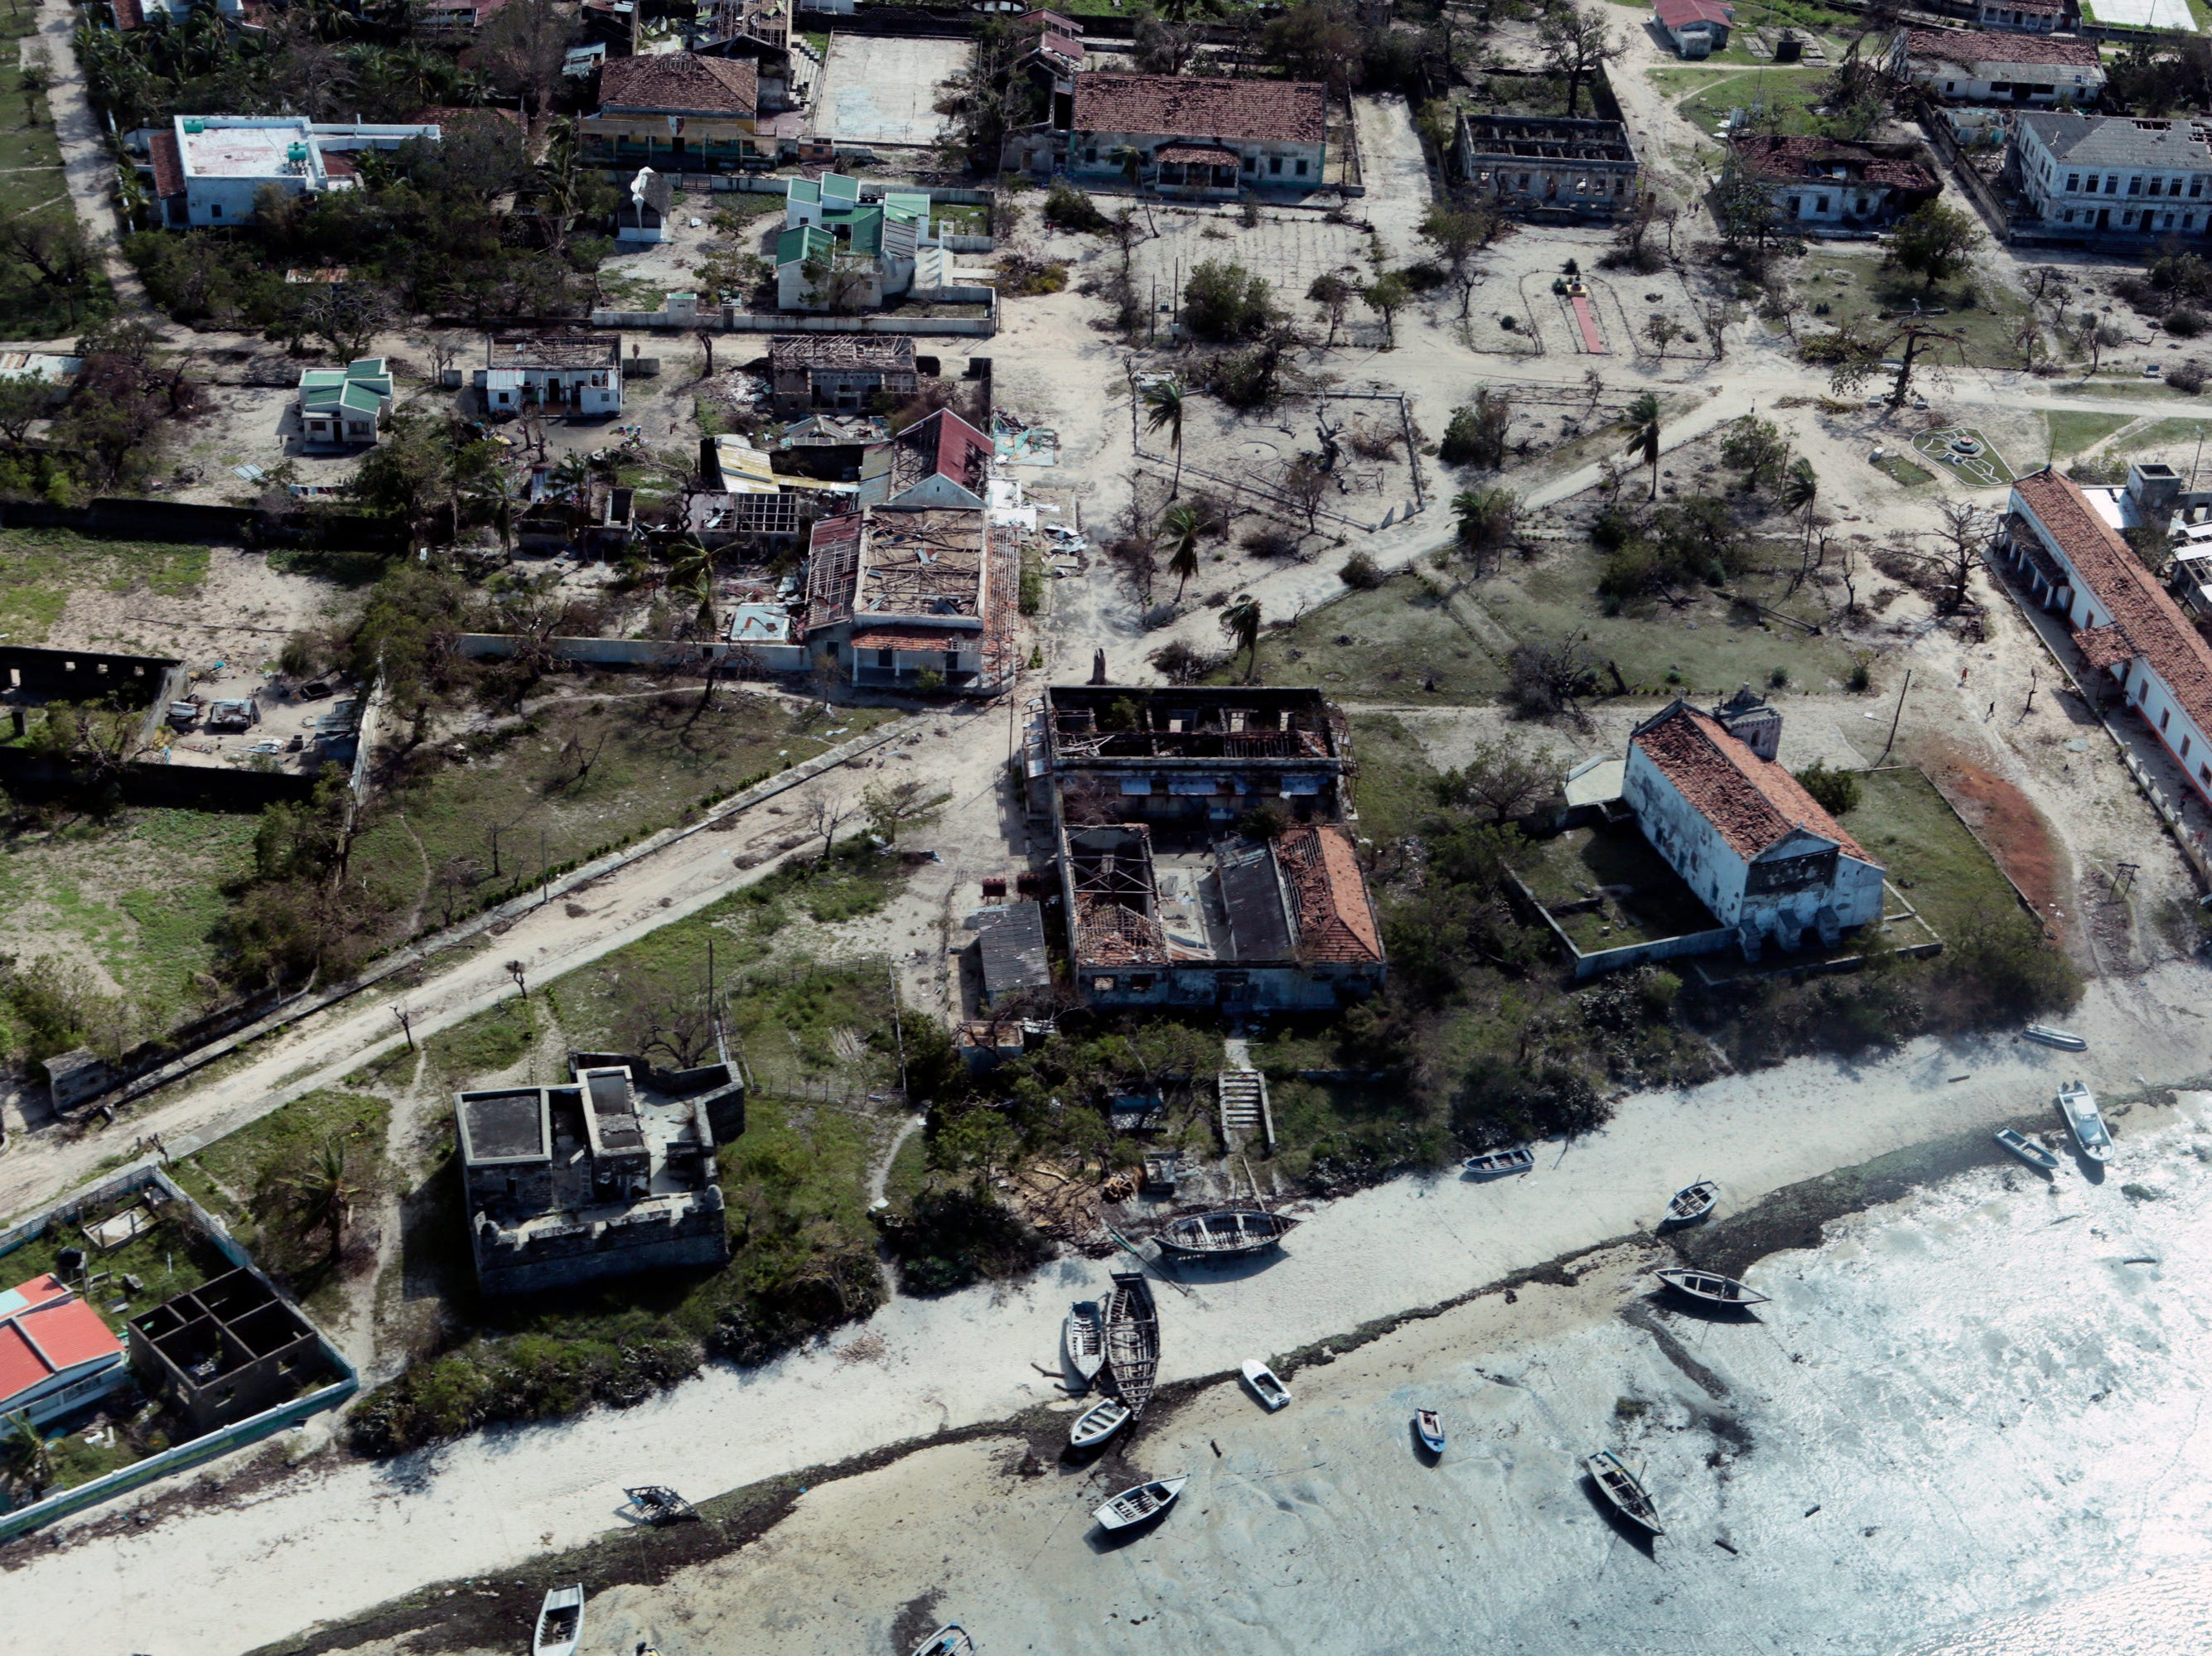 An aerial shot shows widespread destruction Cyclone Kenneth caused when it struck Ibo island north of Pemba city in Mozambique, Wednesday, May, 1, 2019. The government has said more than 40 people have died after the cyclone made landfall, and the humanitarian situation in Pemba and other areas is dire. More than 22 inches of rain have fallen in Pemba since Kenneth arrived just six weeks after Cyclone Idai tore into central Mozambique.